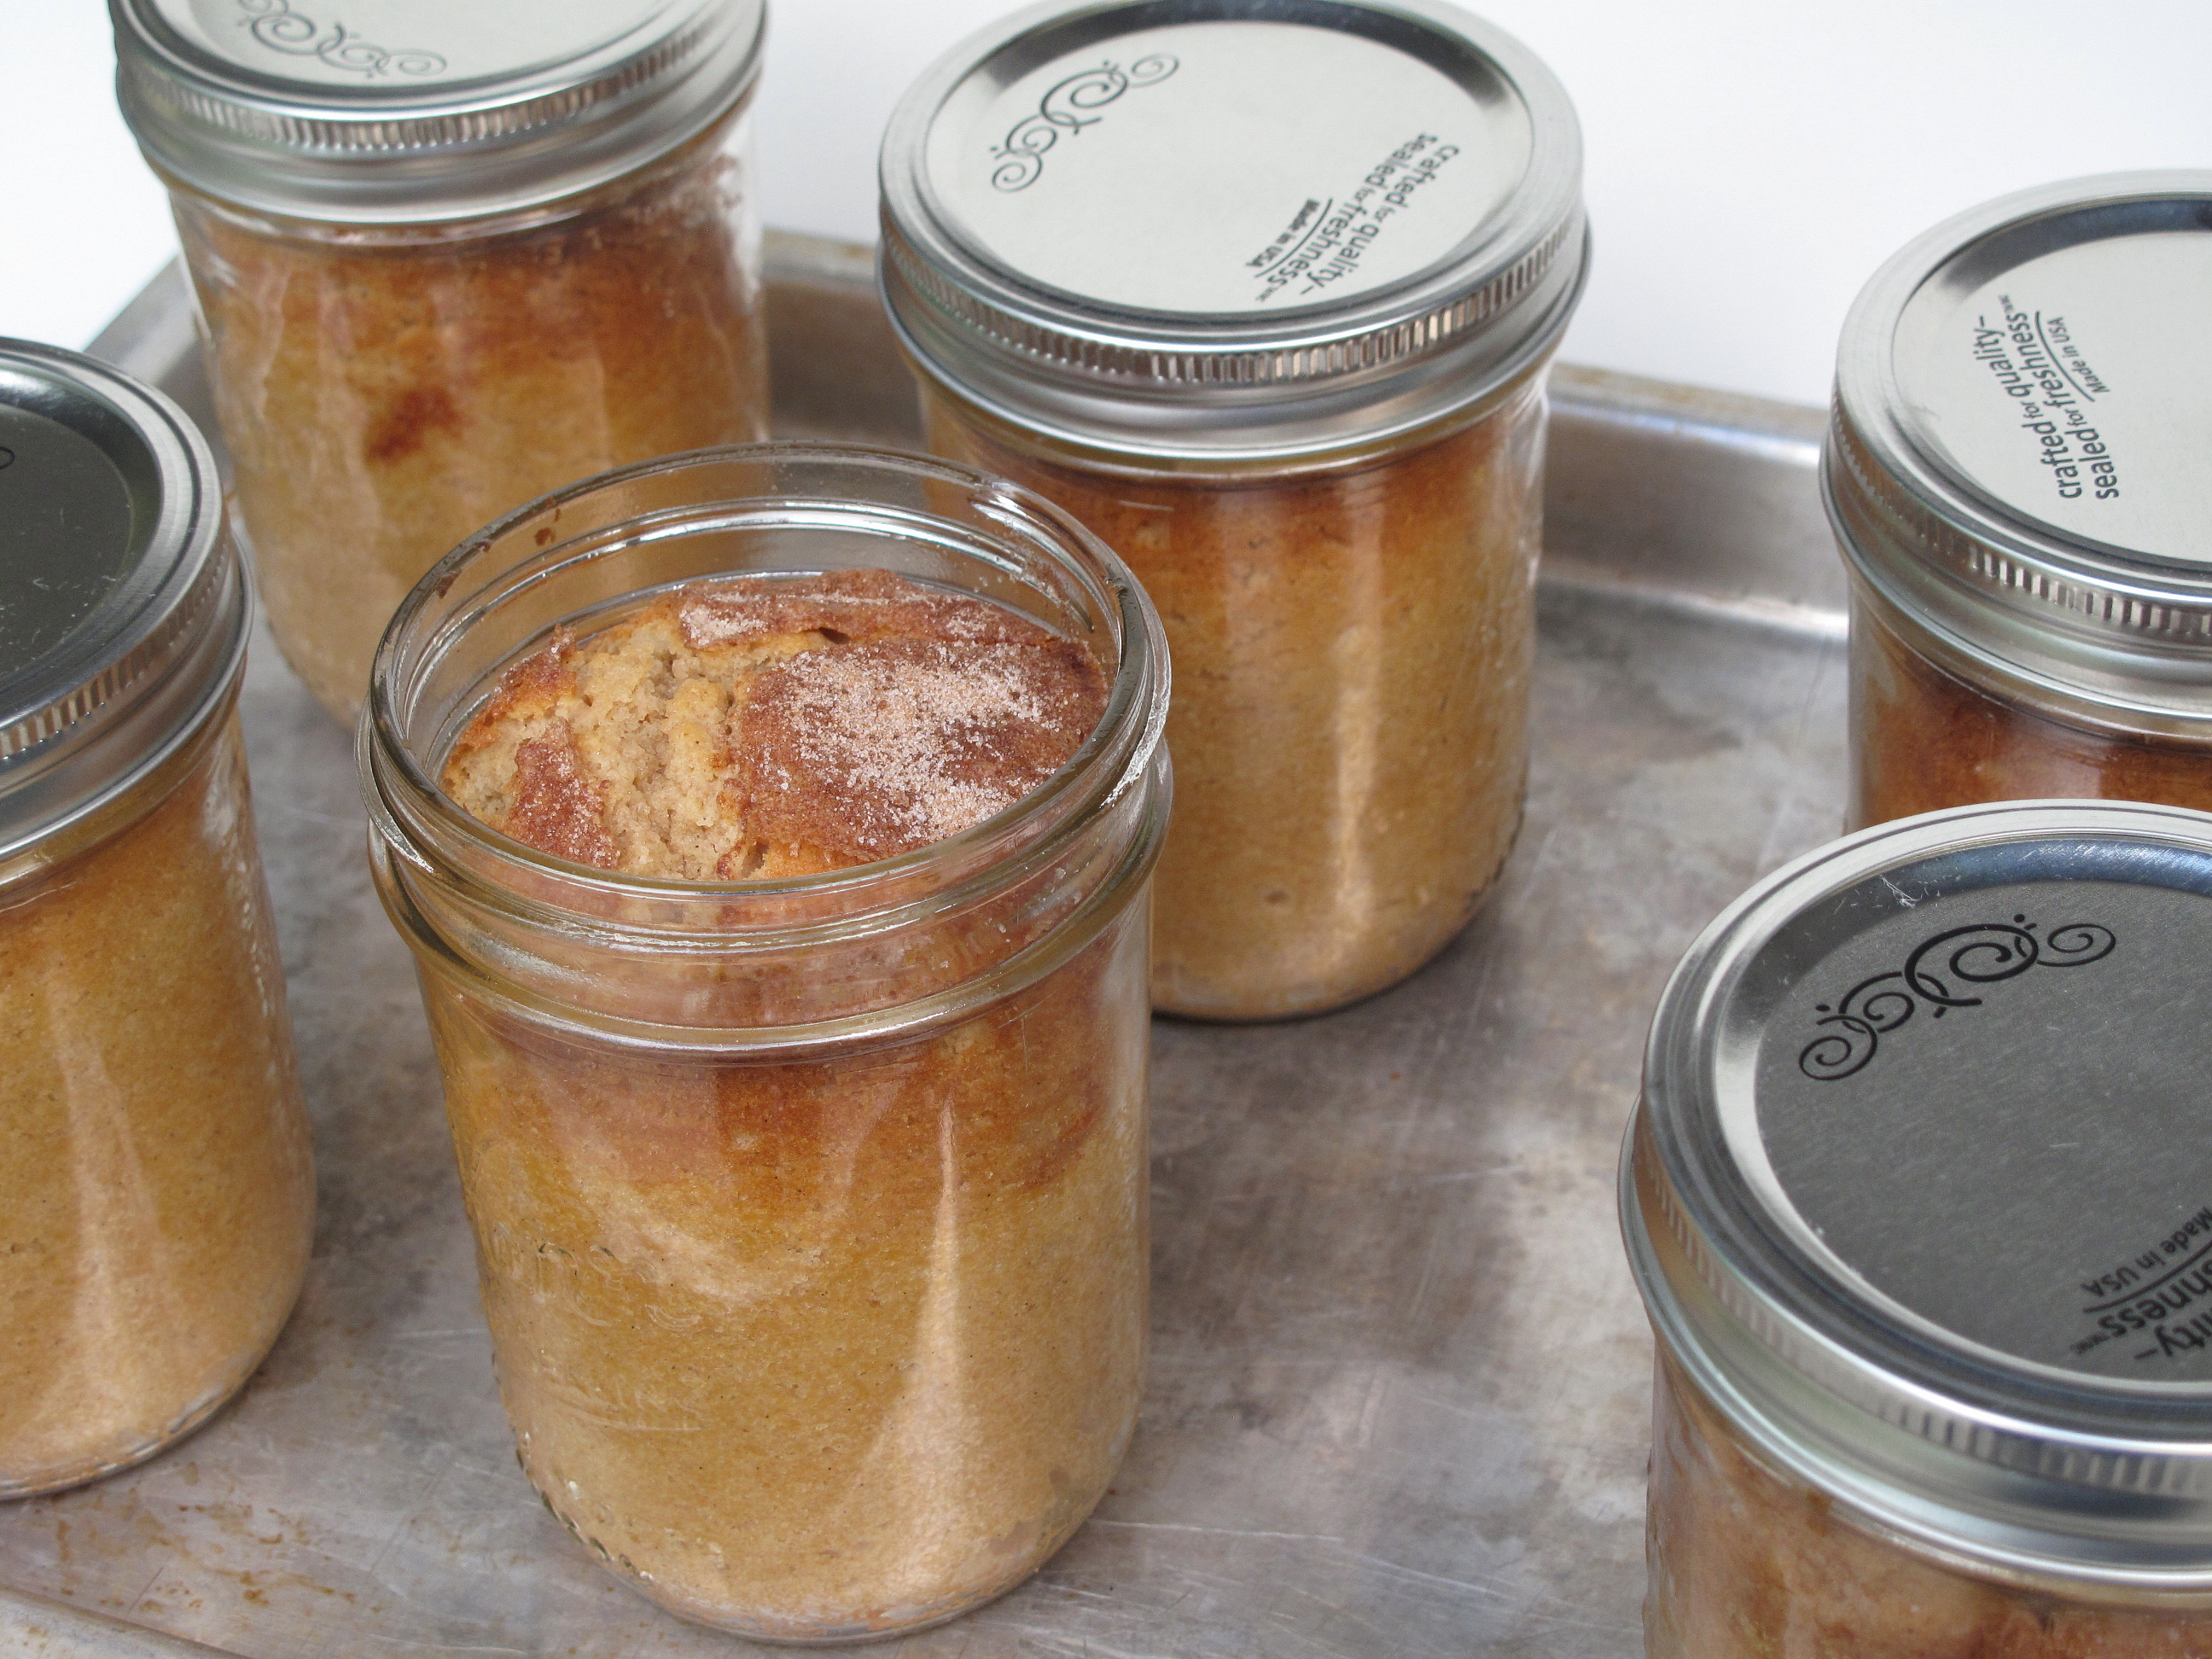 Cake In A Jar Recipe No Bake: Snickerdoodle Cake-in-a-Jar